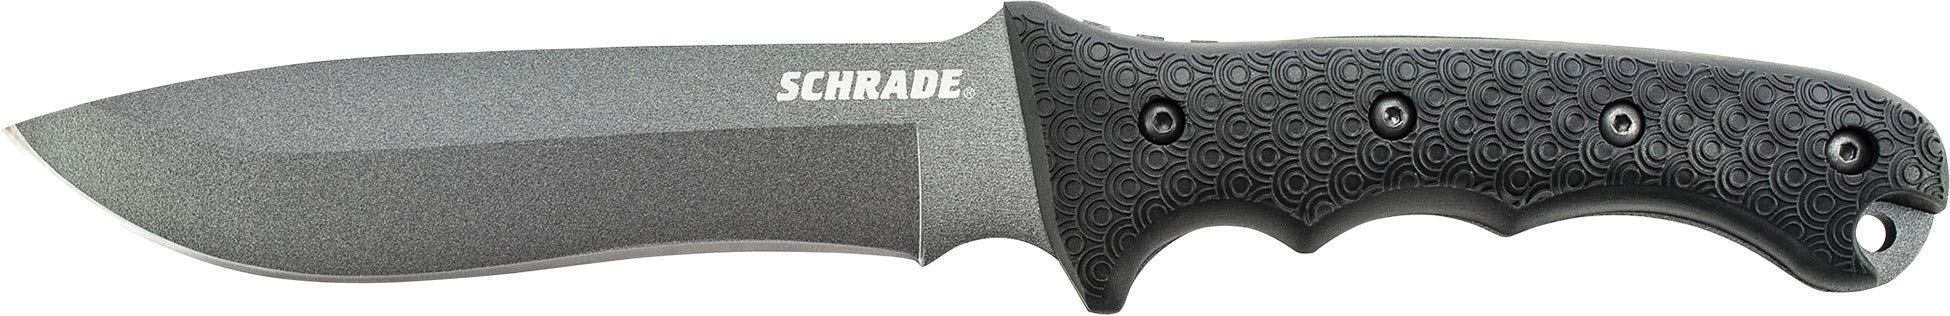 Schrade SCHF9 12.1in High Carbon Steel Fixed Blade Knife with 6.4in Kukri Point Blade and TPE Handle for Outdoor Survival, Camping and Bushcraft